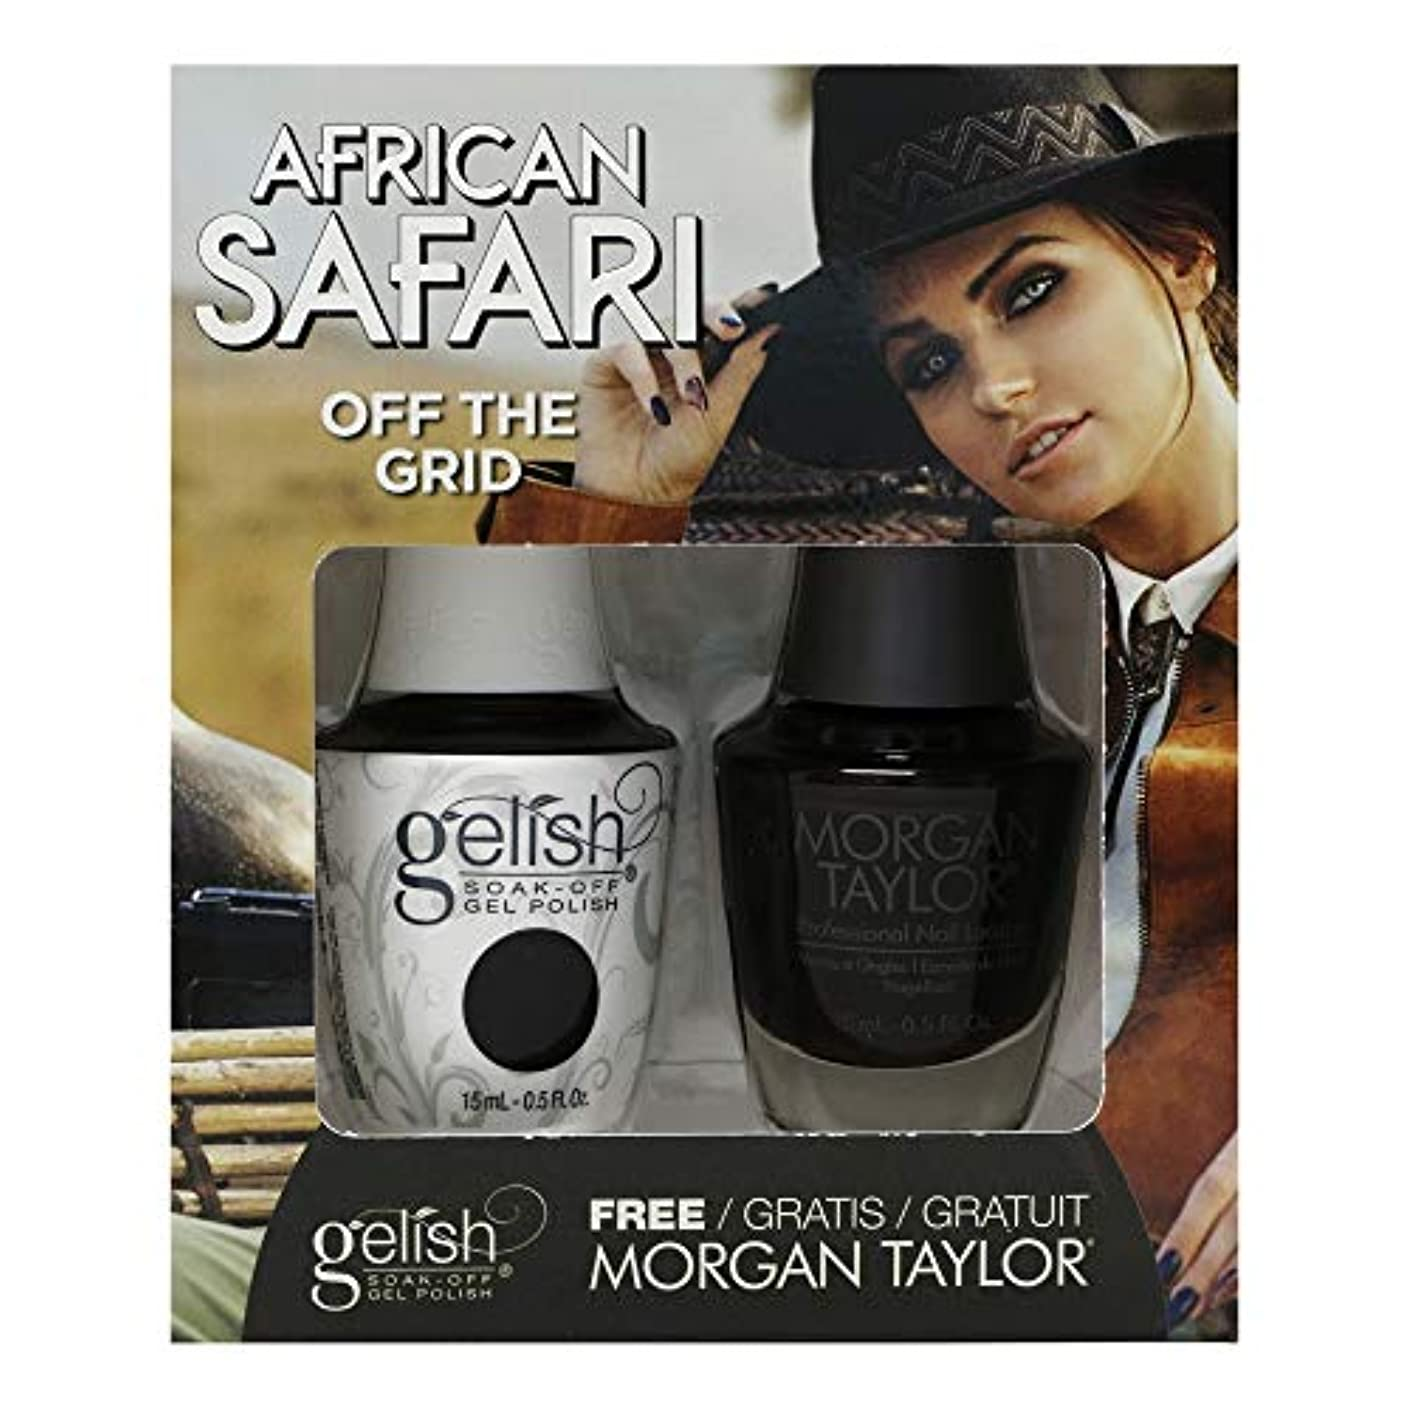 居眠りするペインギリック静かにGelish - Two of a Kind - African Safari Collection - Off The Grid